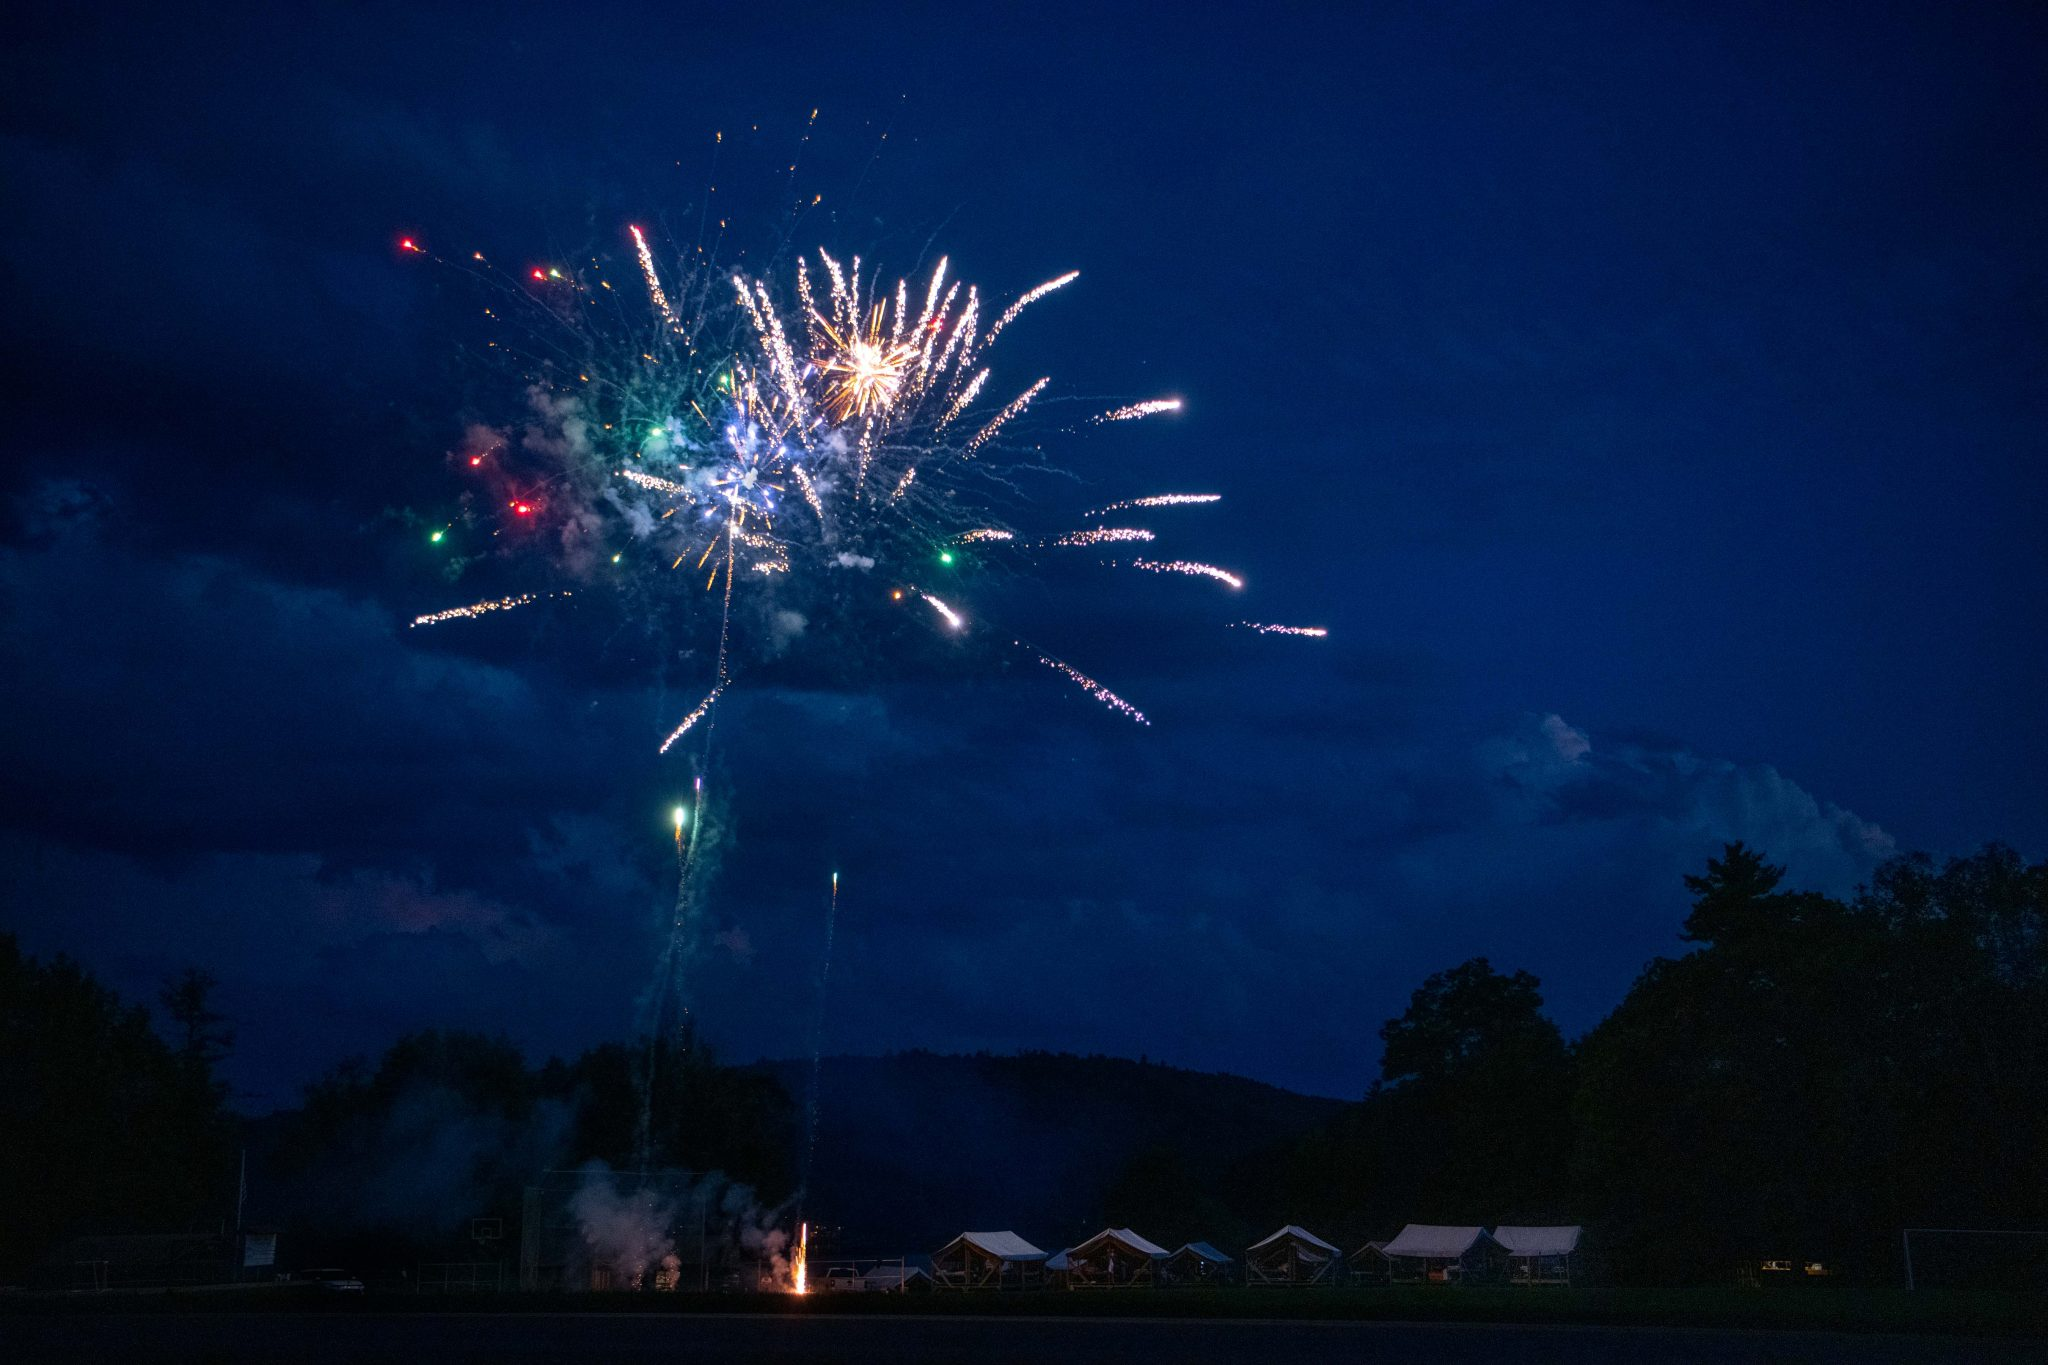 Fireworks in the nightsky.